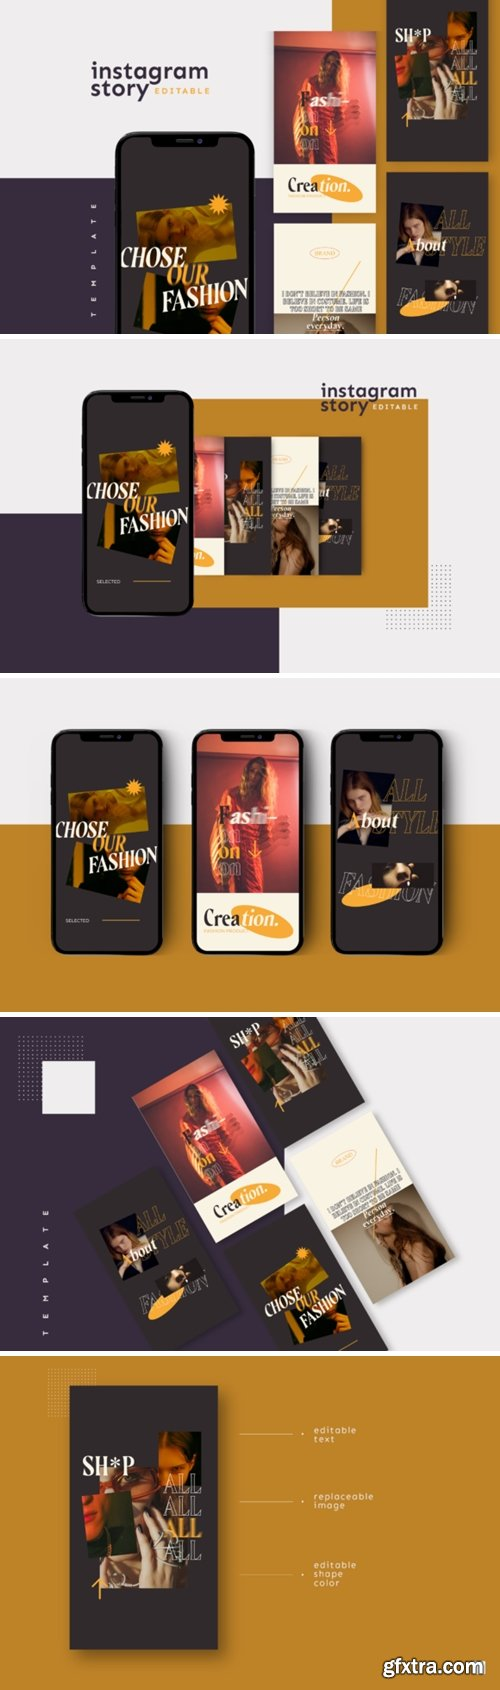 Instagram Story Template 2654462